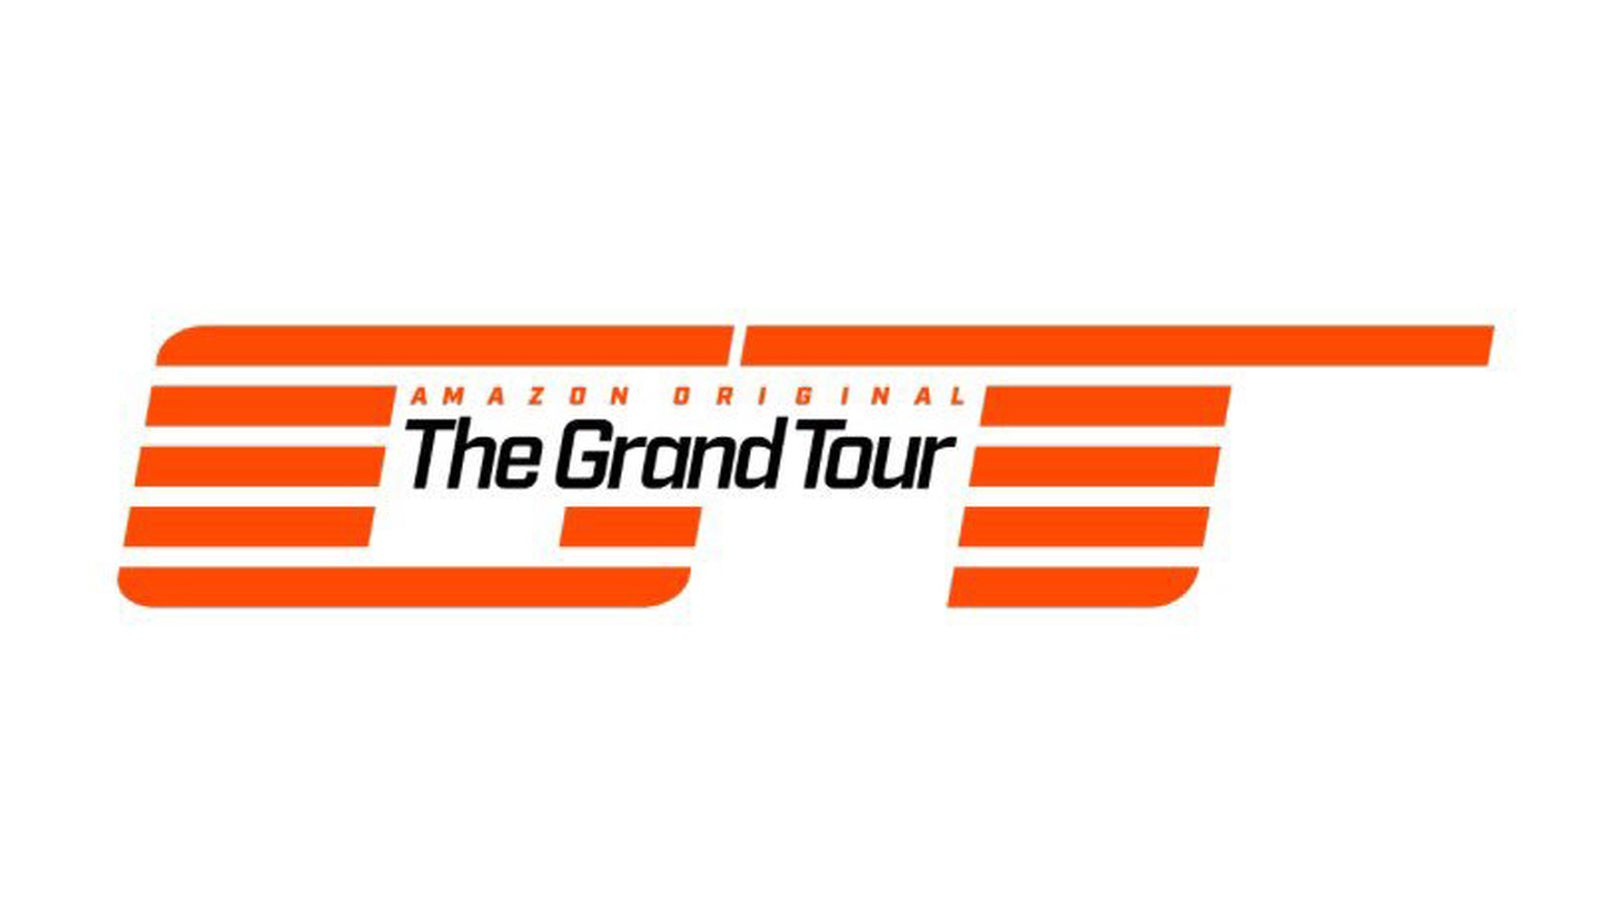 Pretty Fall Iphone Wallpaper Jeremy Clarkson Unveils The Logo For The Grand Tour The